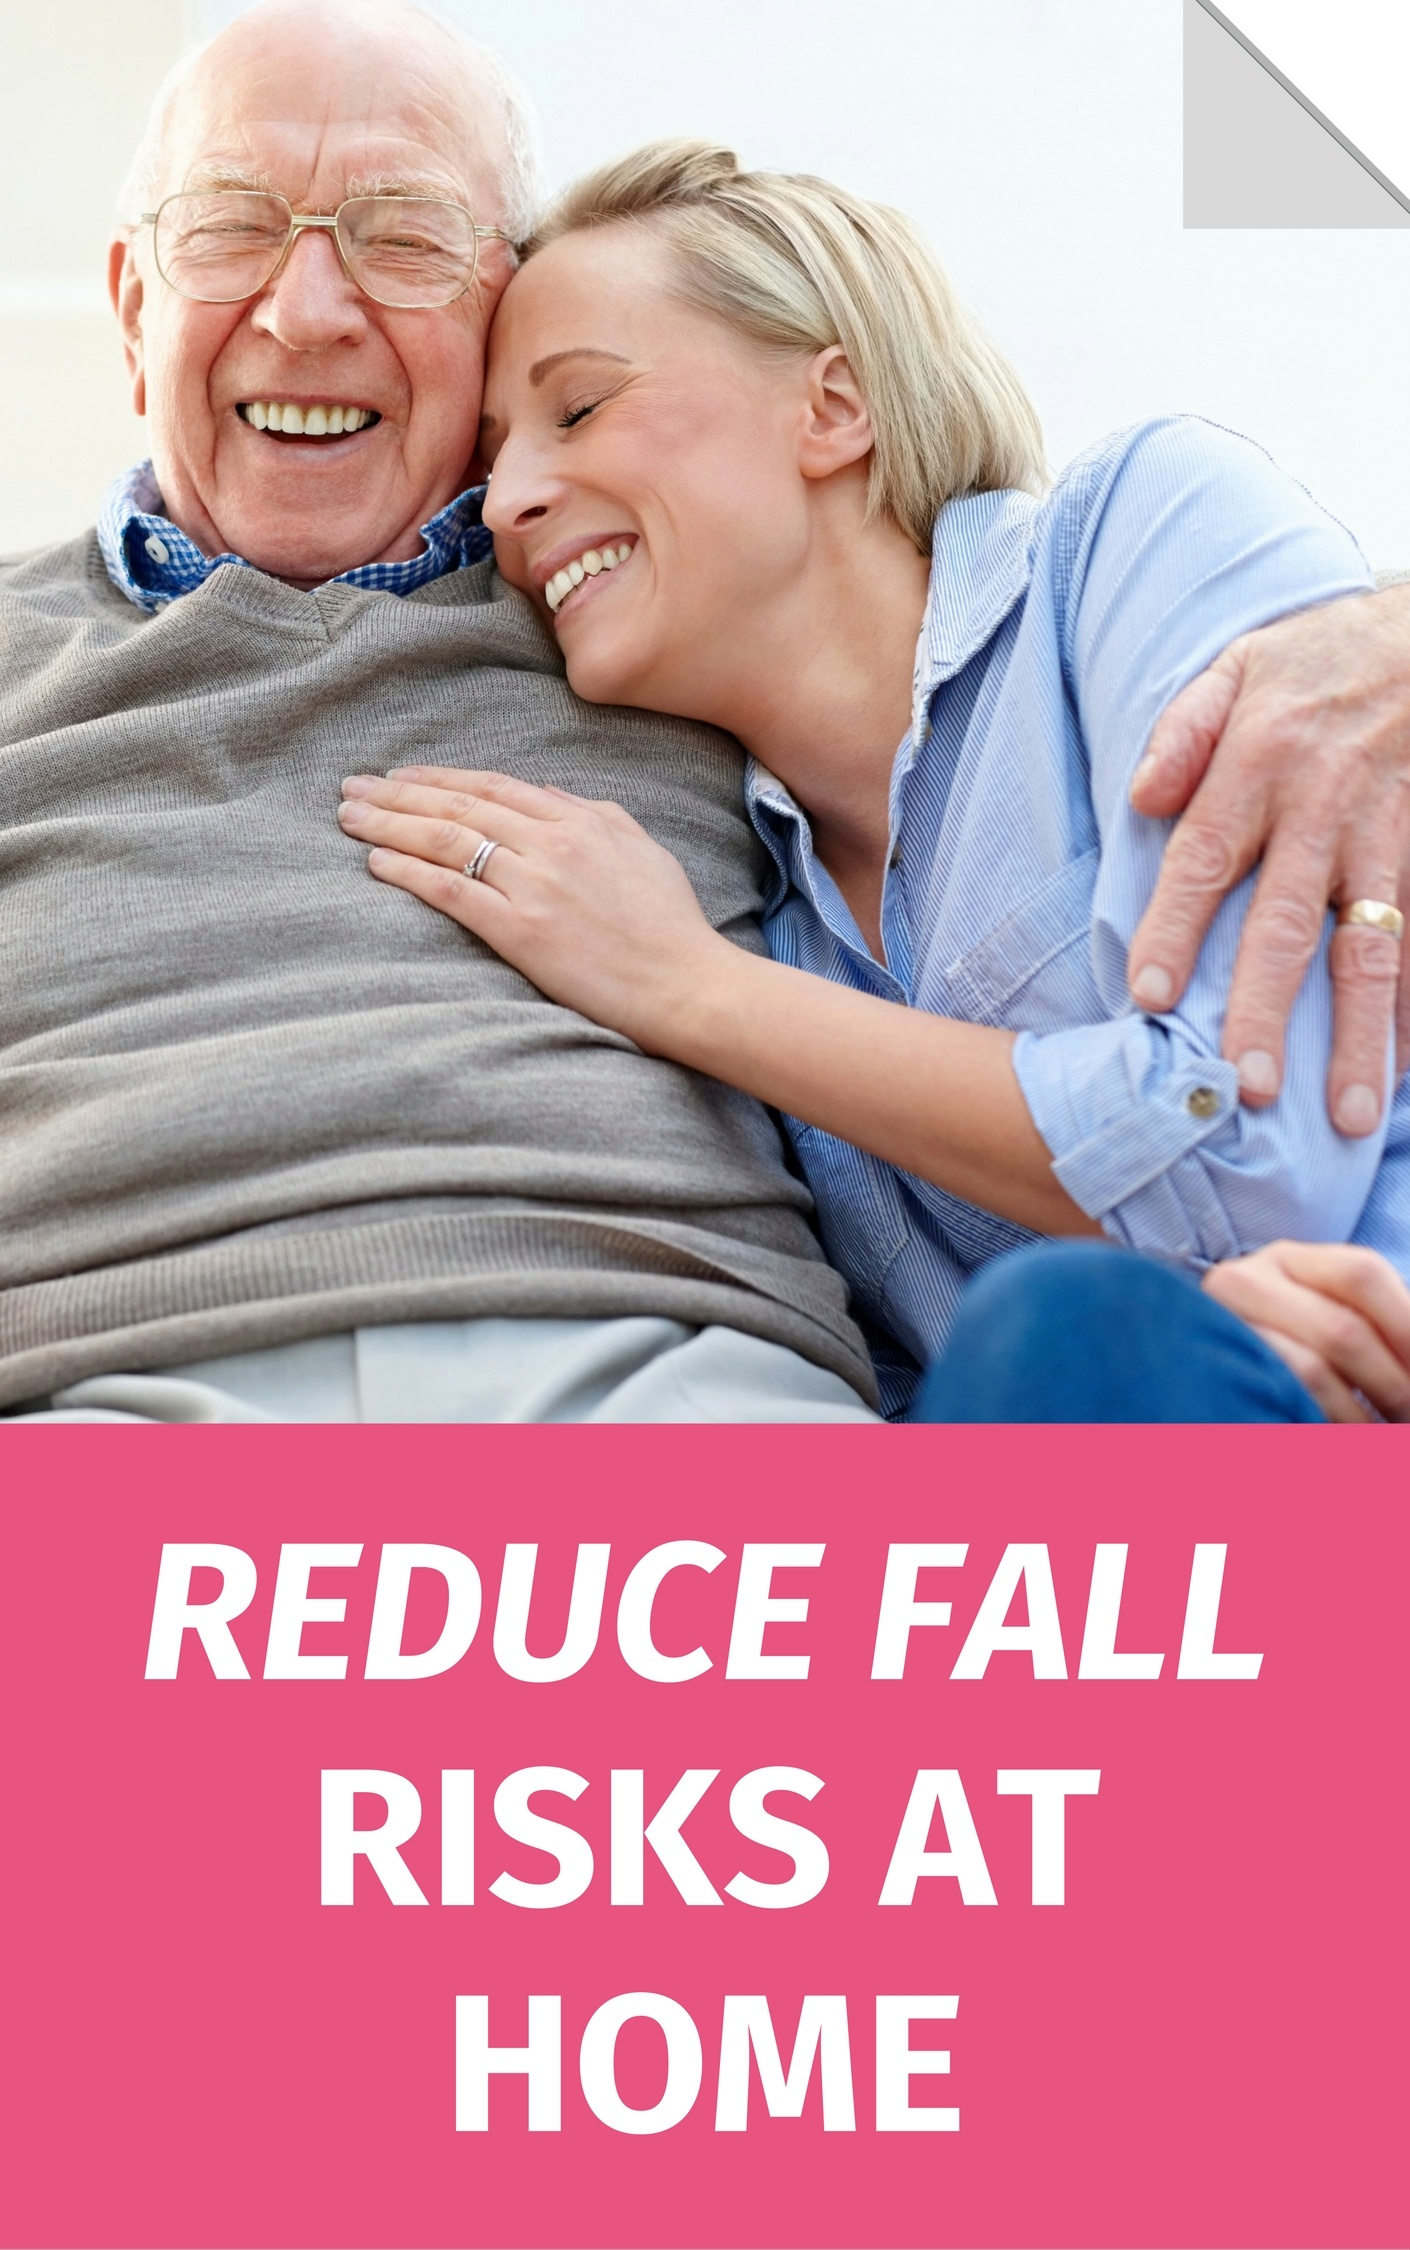 Reduce Fall Risk at Home